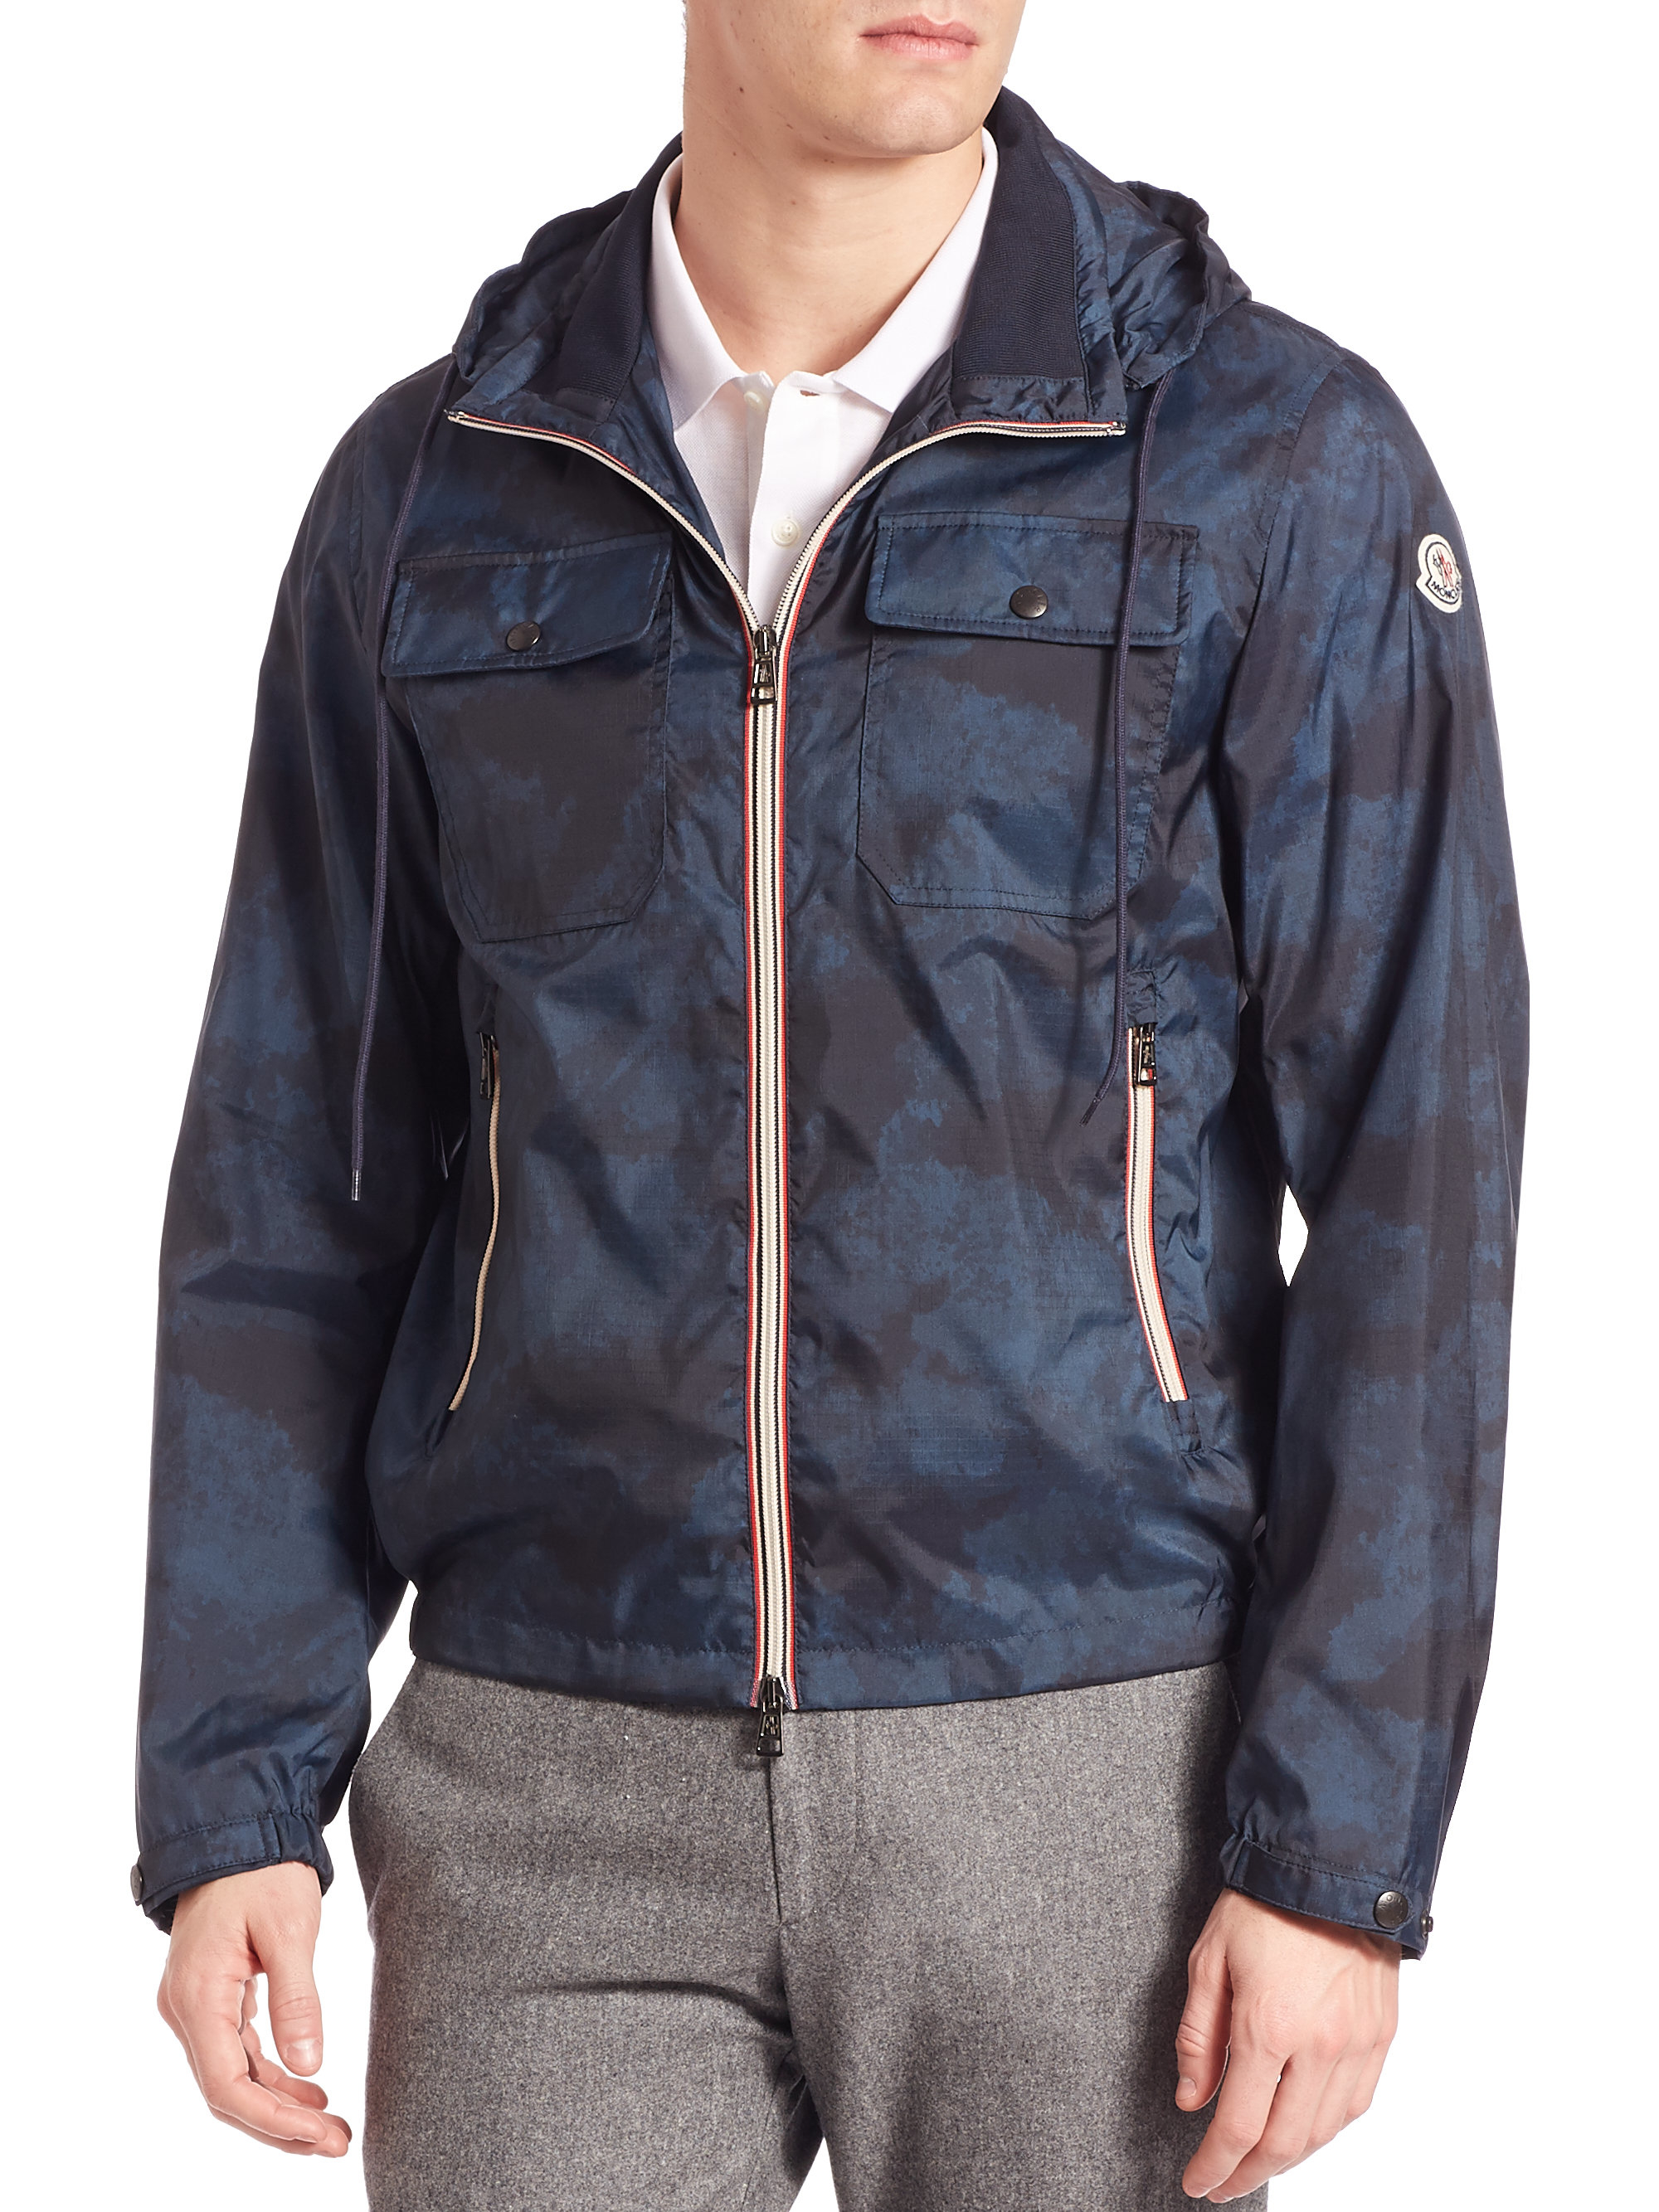 ... specifications; navy moncler jacket